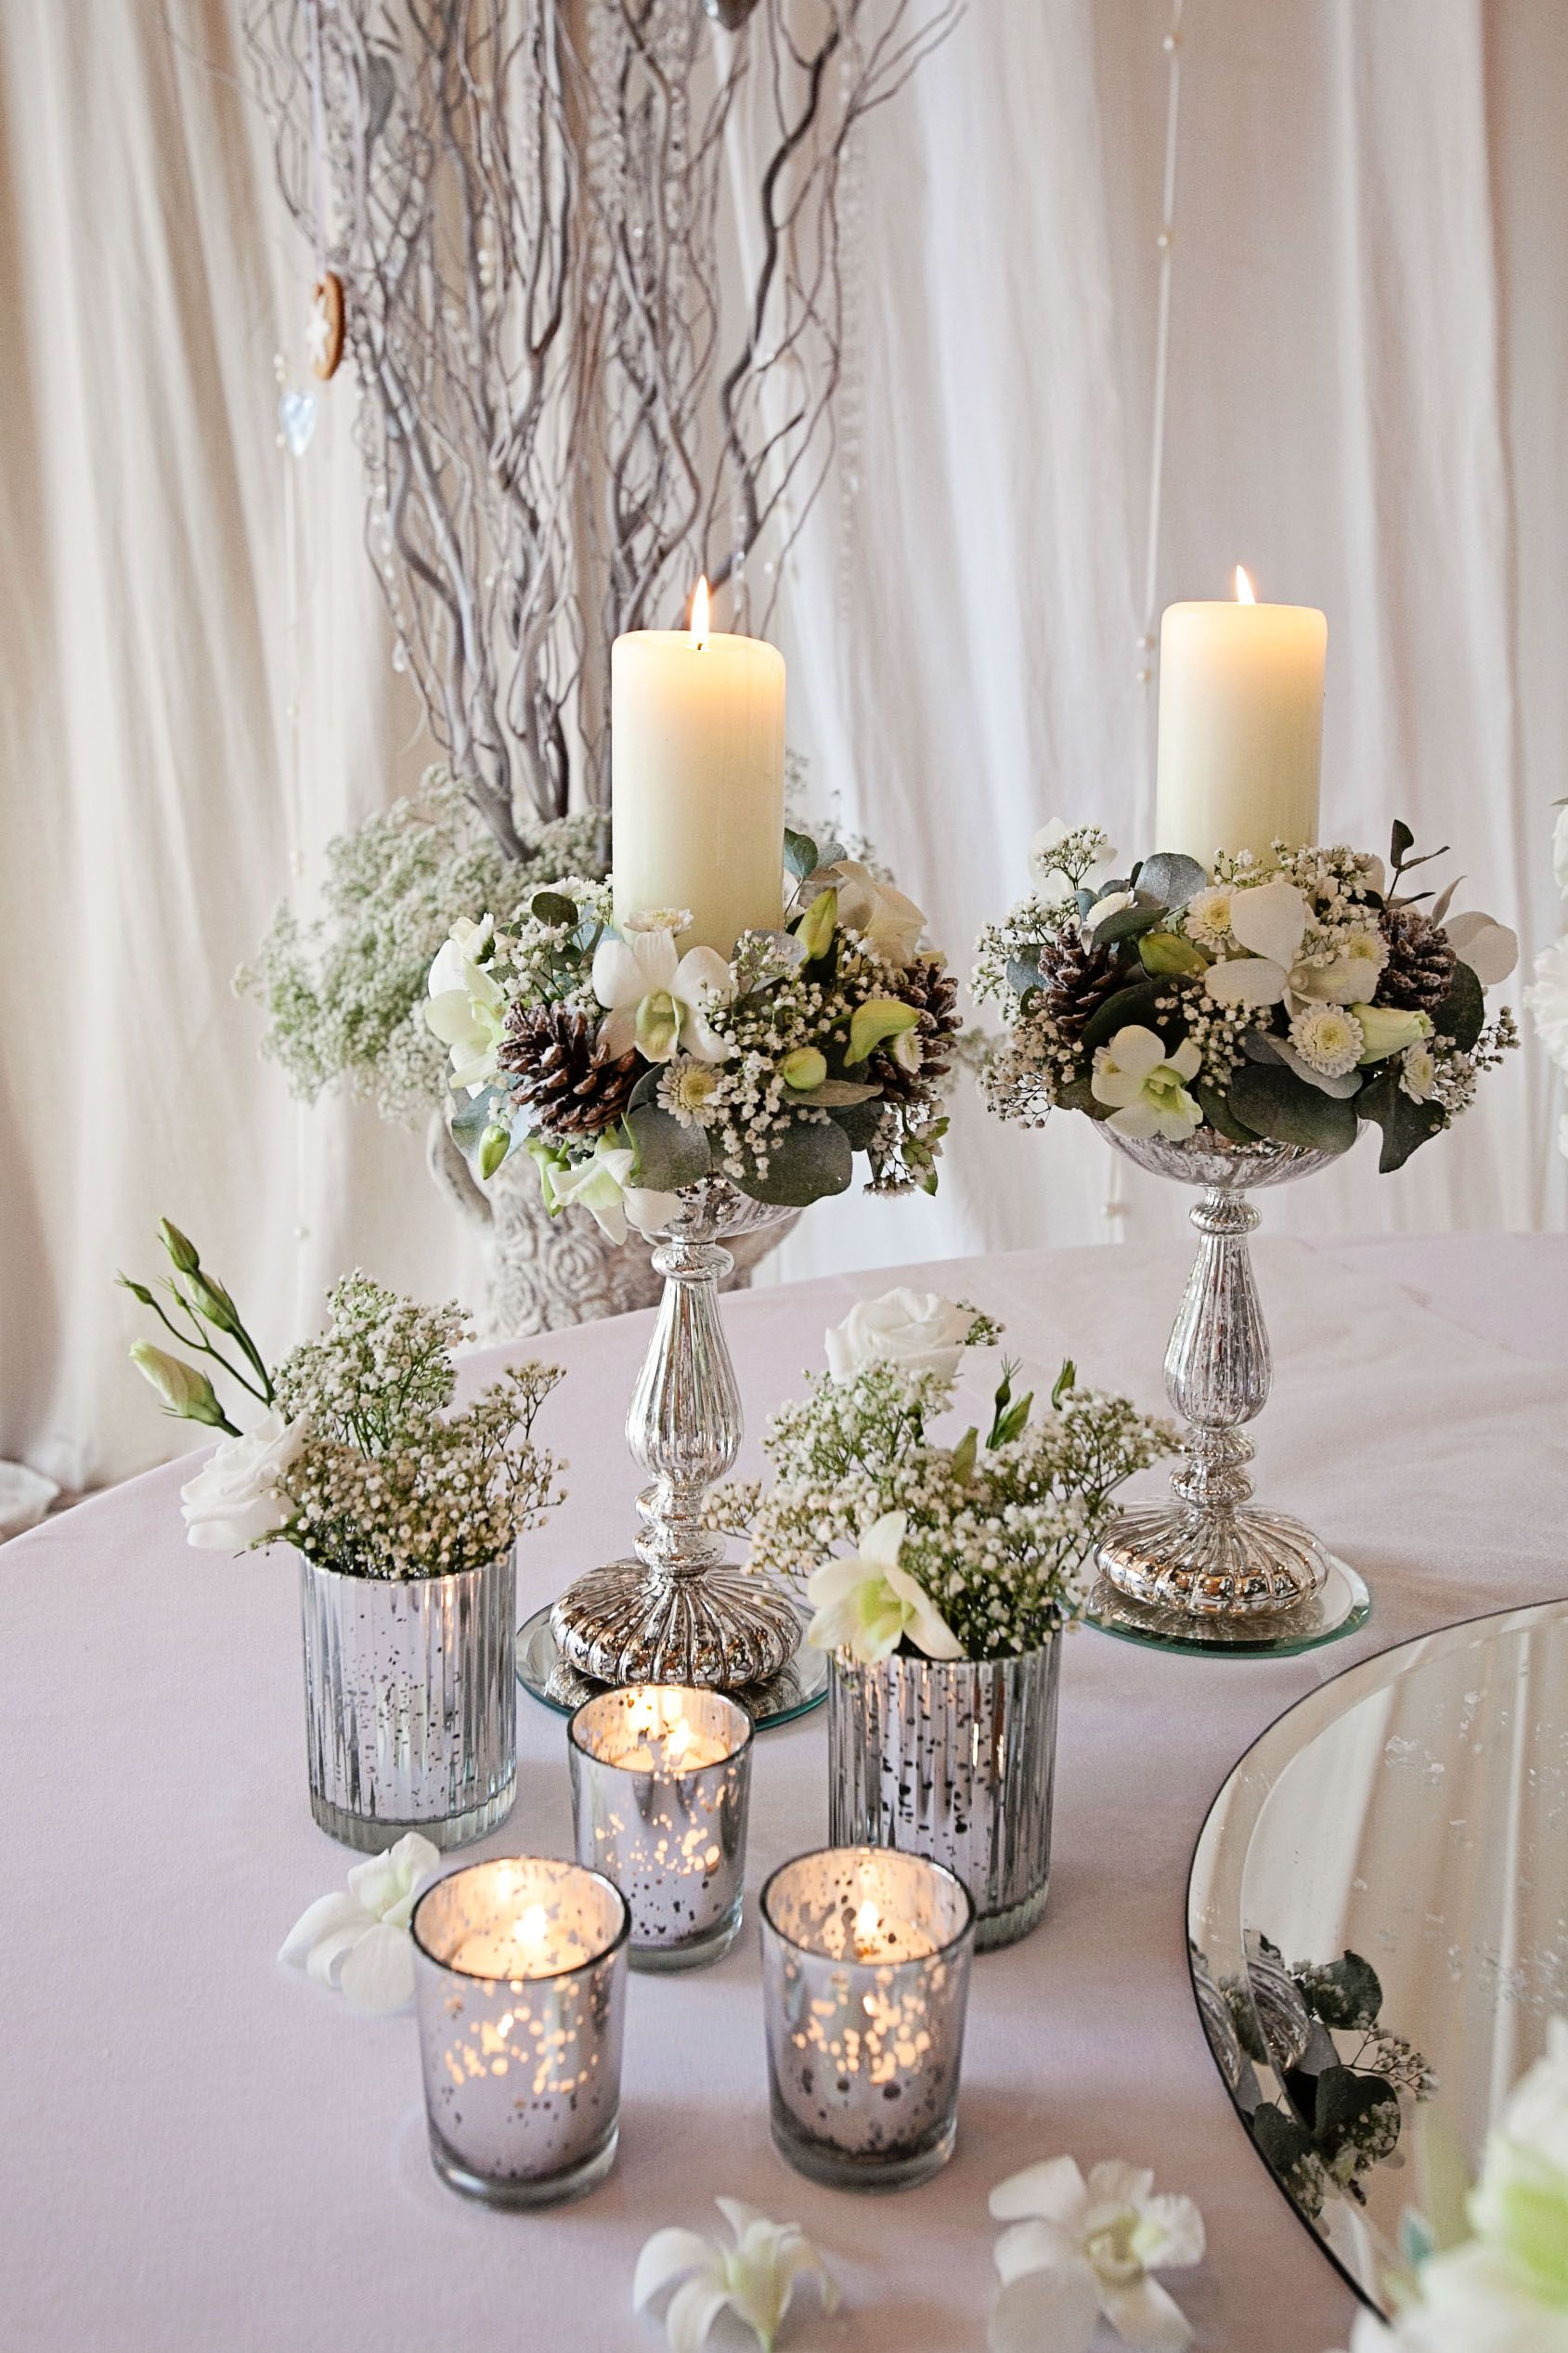 Winter Table Flowers Silver Mercury Glass Vases Image By Alex